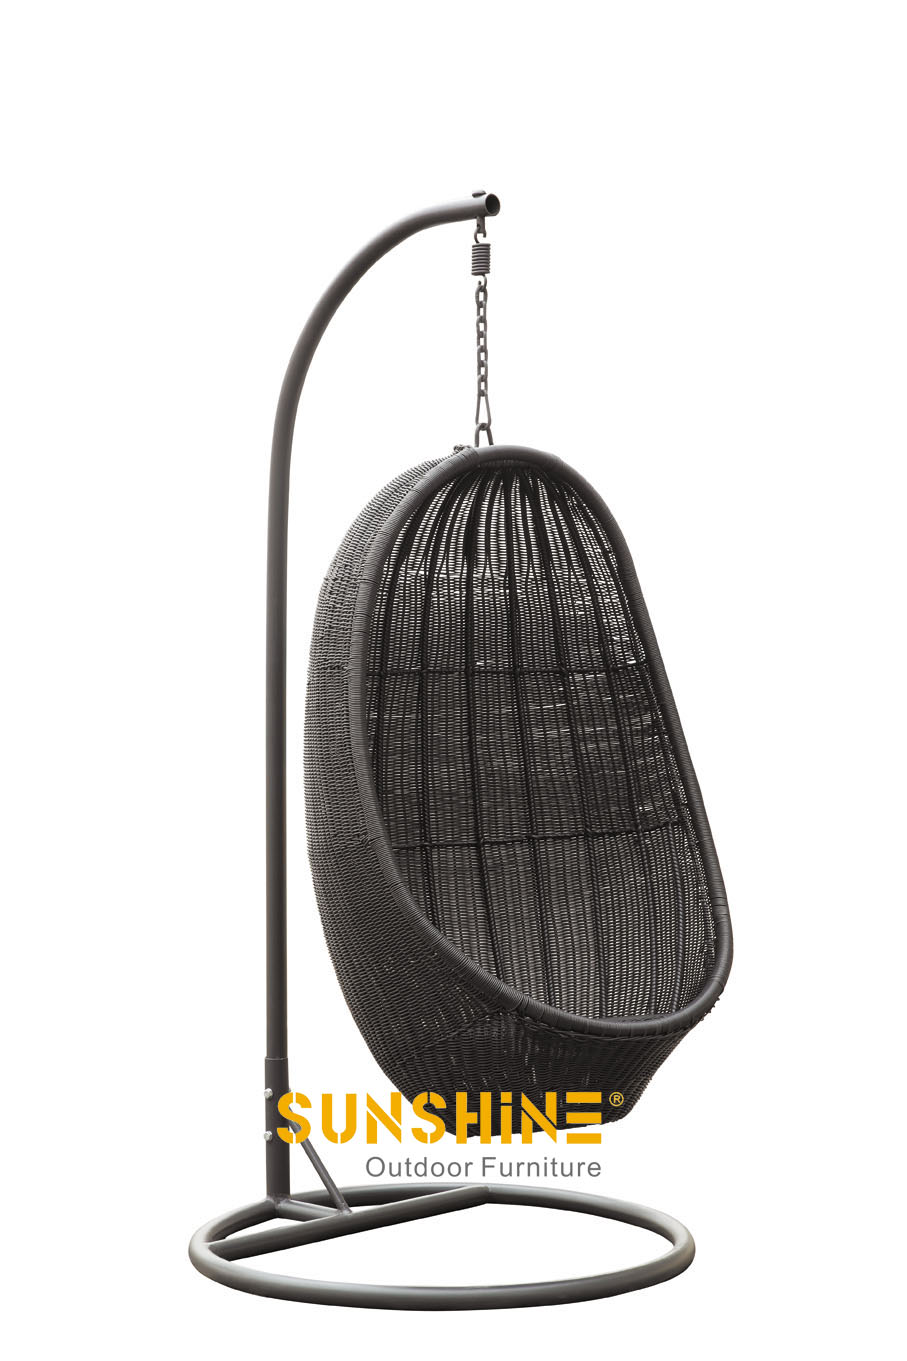 Hanging Egg Chair Outdoor Furniture Modern Rattan Furniture Patio Furniture Garden Furniture